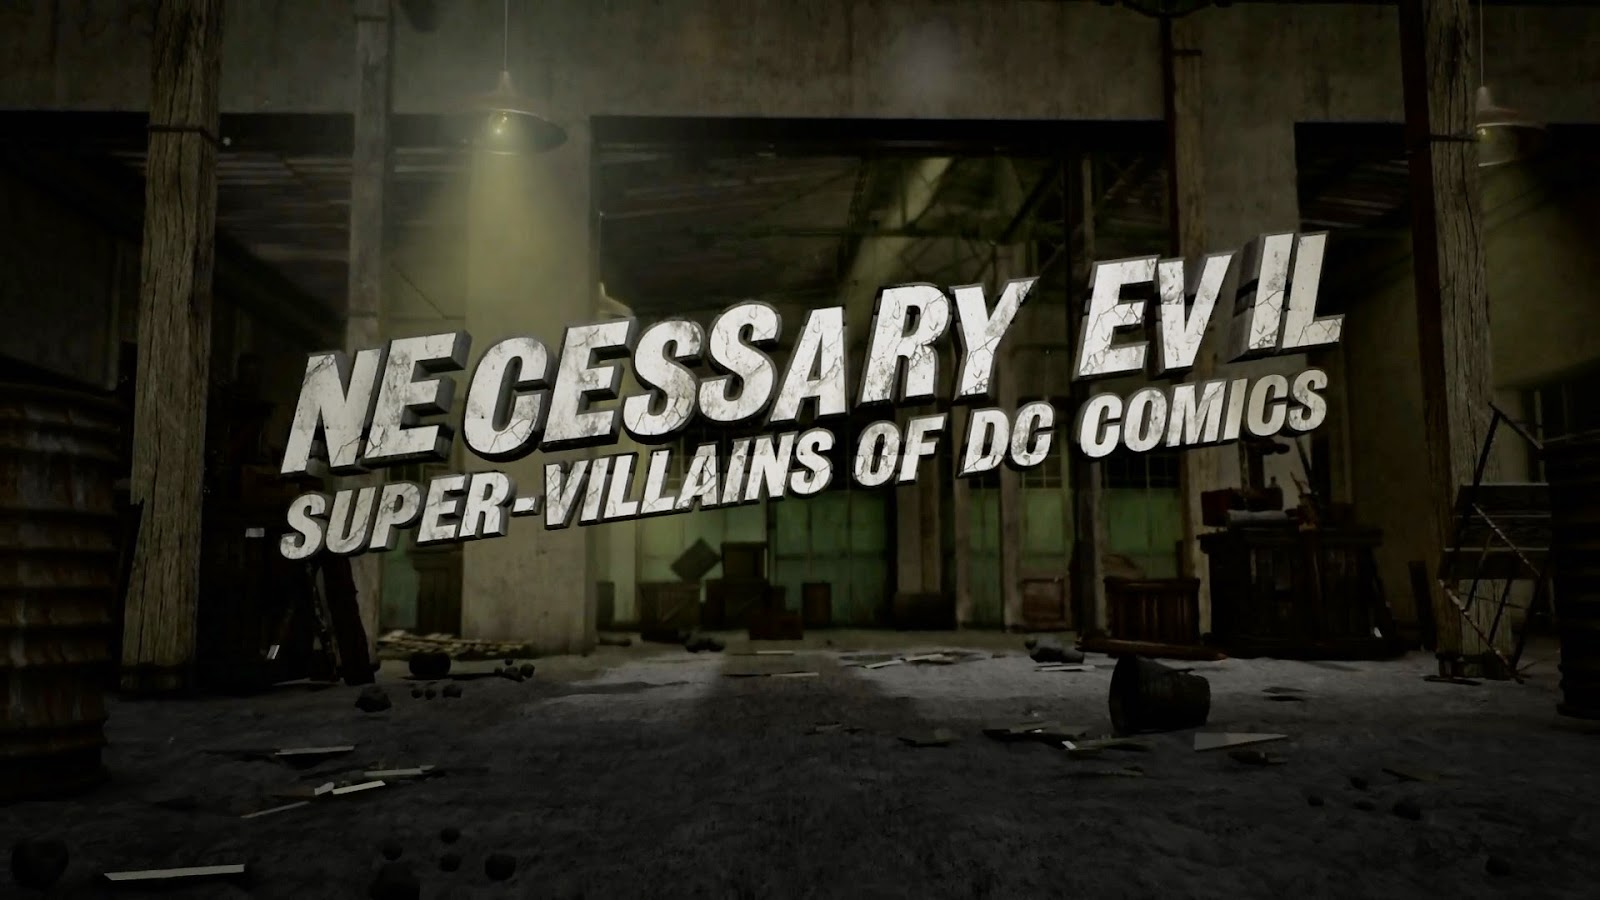 Necessary Evil: Super-Villains of DC Comics [1080p. Inglés]